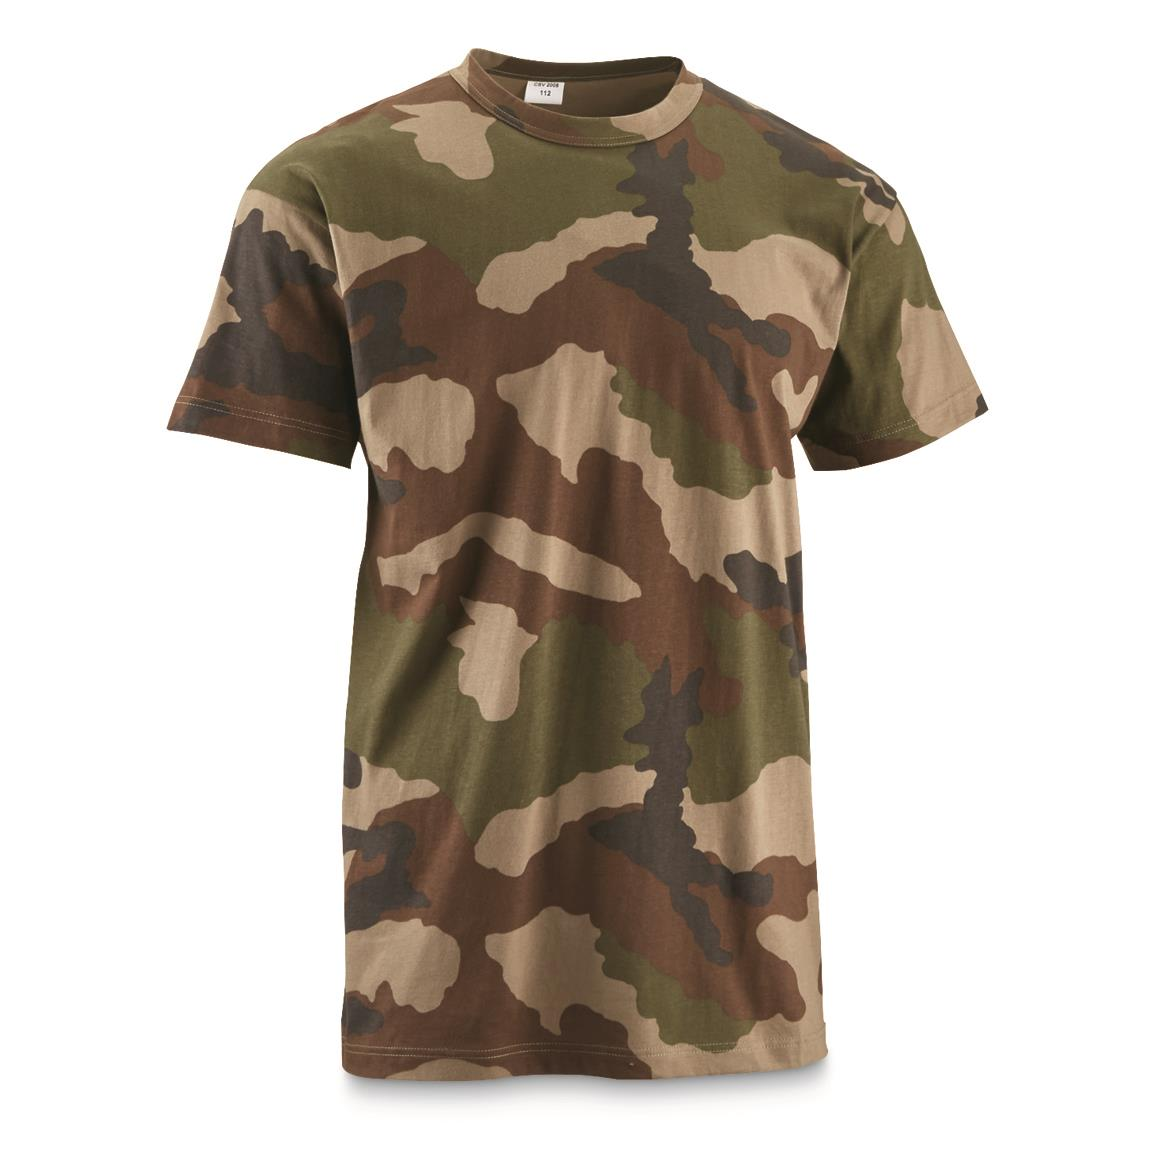 French Military Surplus CCE Woodland Camo T-shirt, New, Woodland